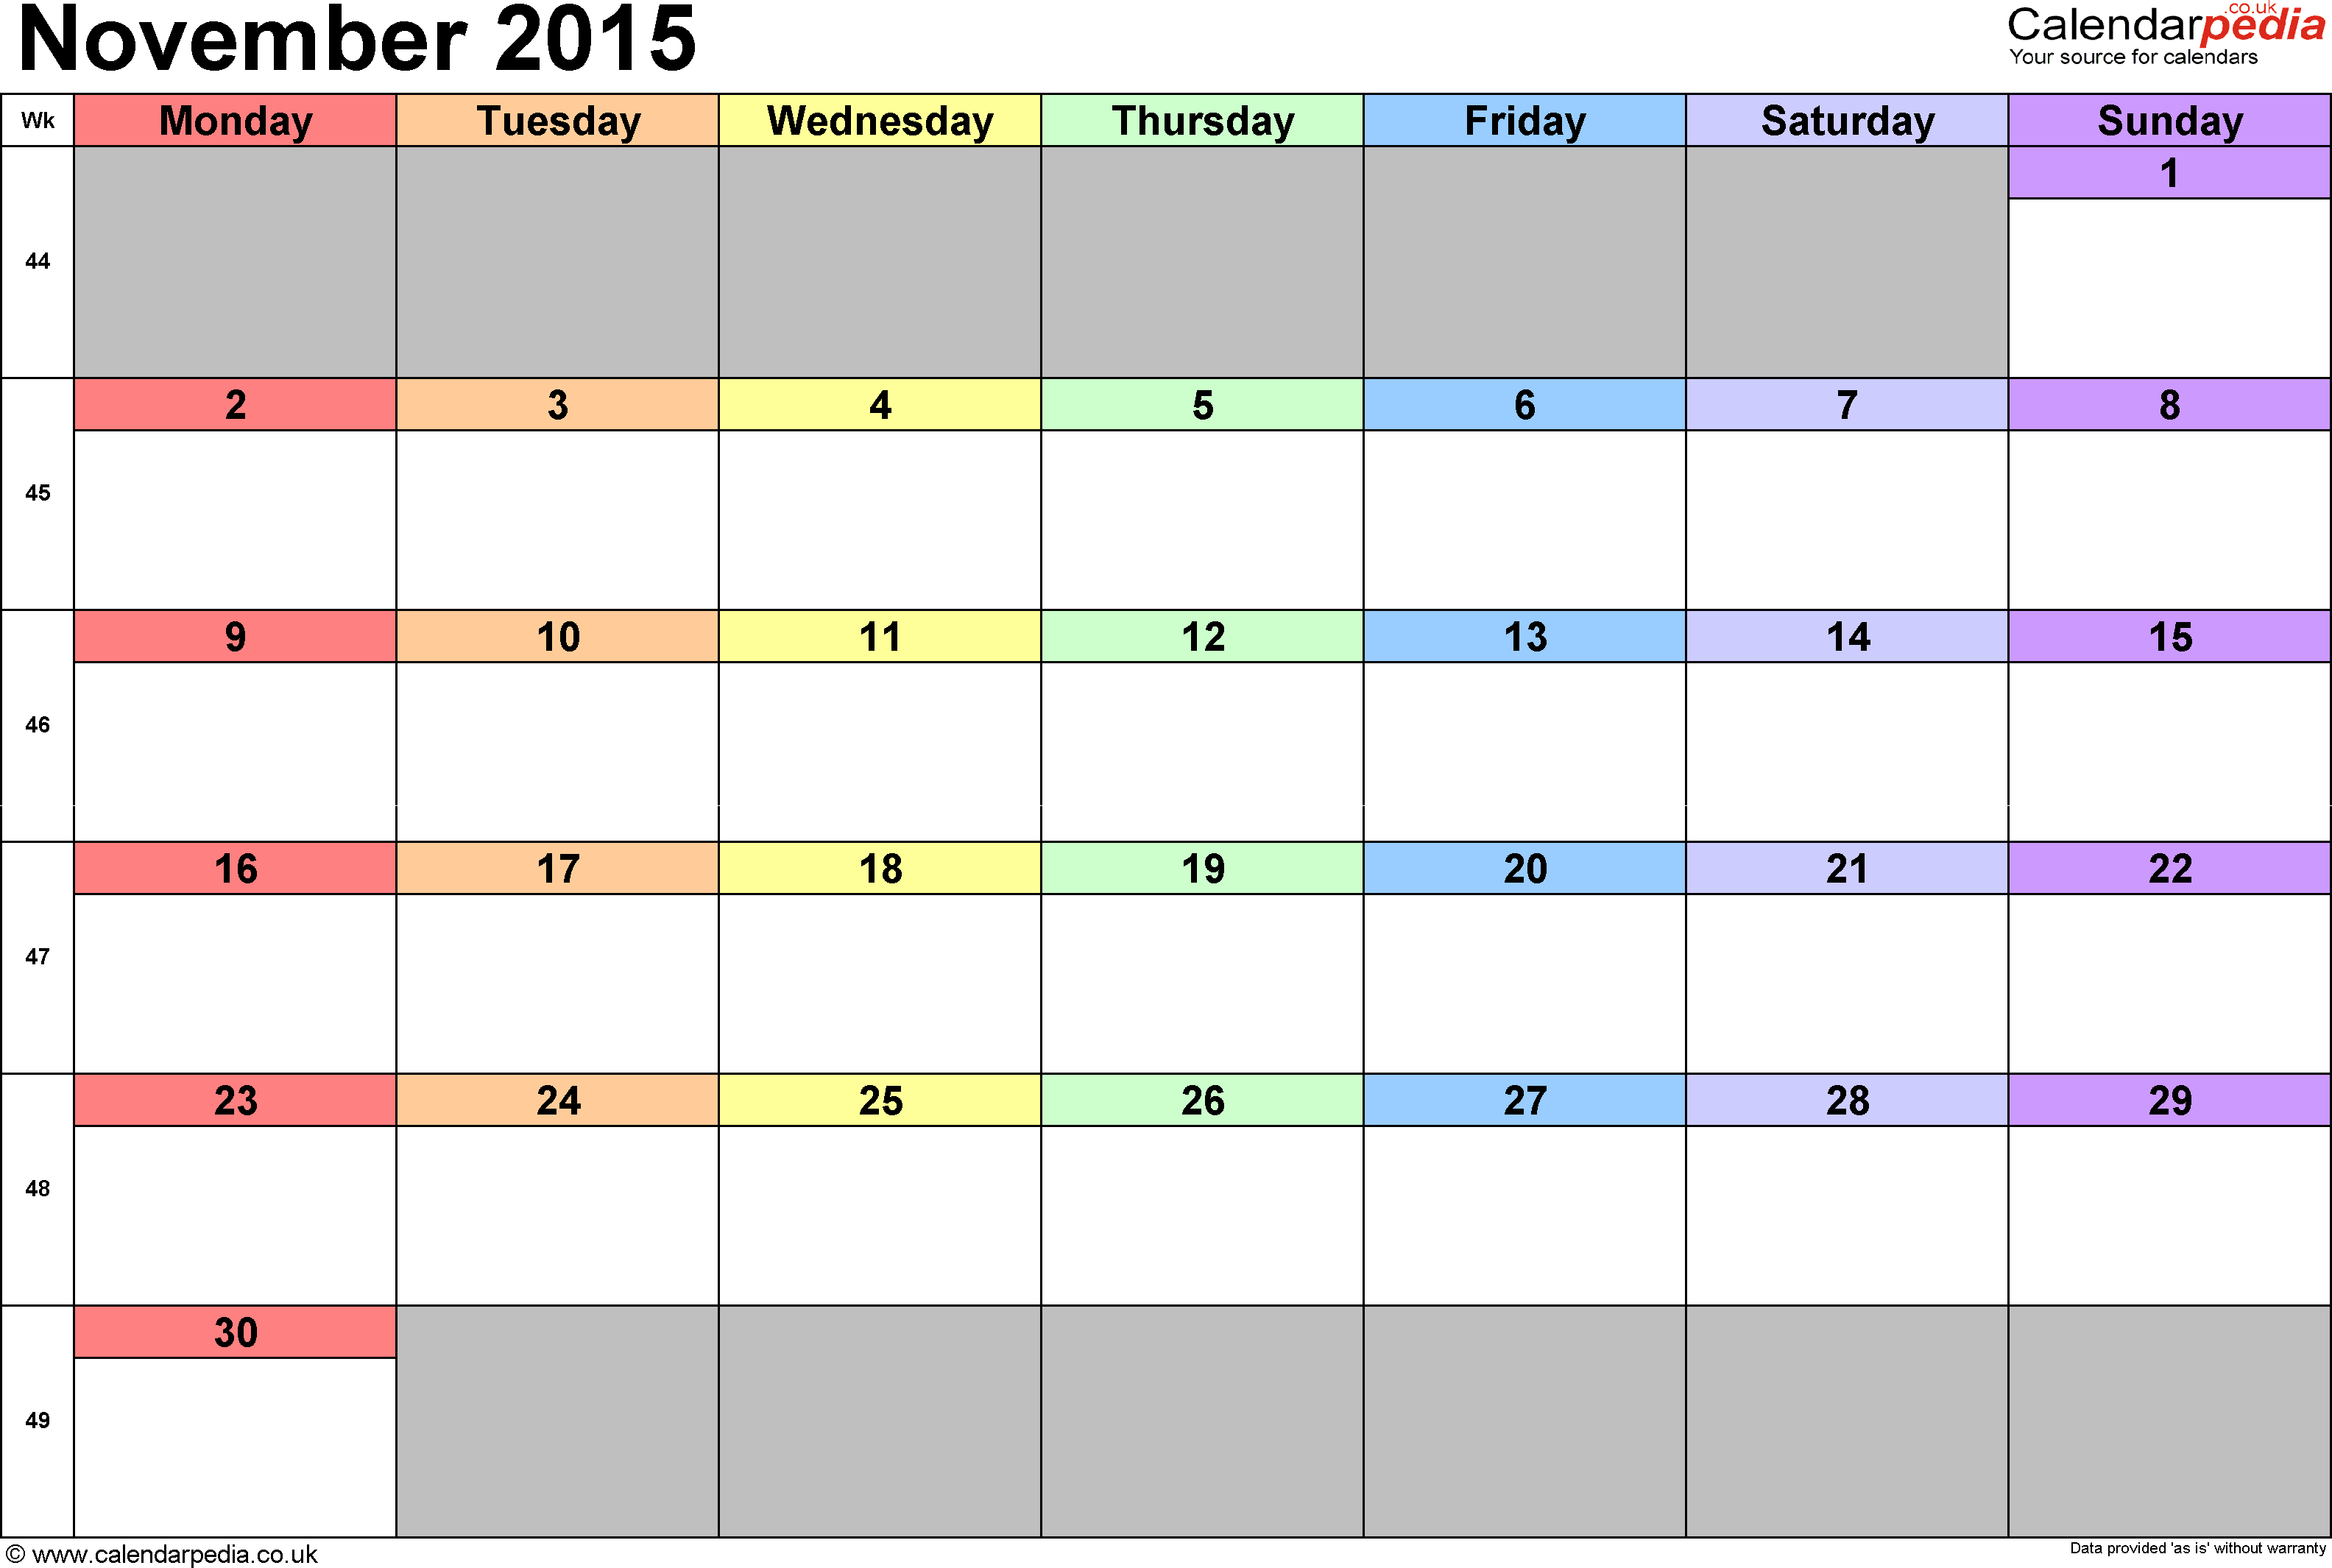 calendar 2015 uk bank holidays excel pdf word templates calendar 2015 in landscape format 3 templates